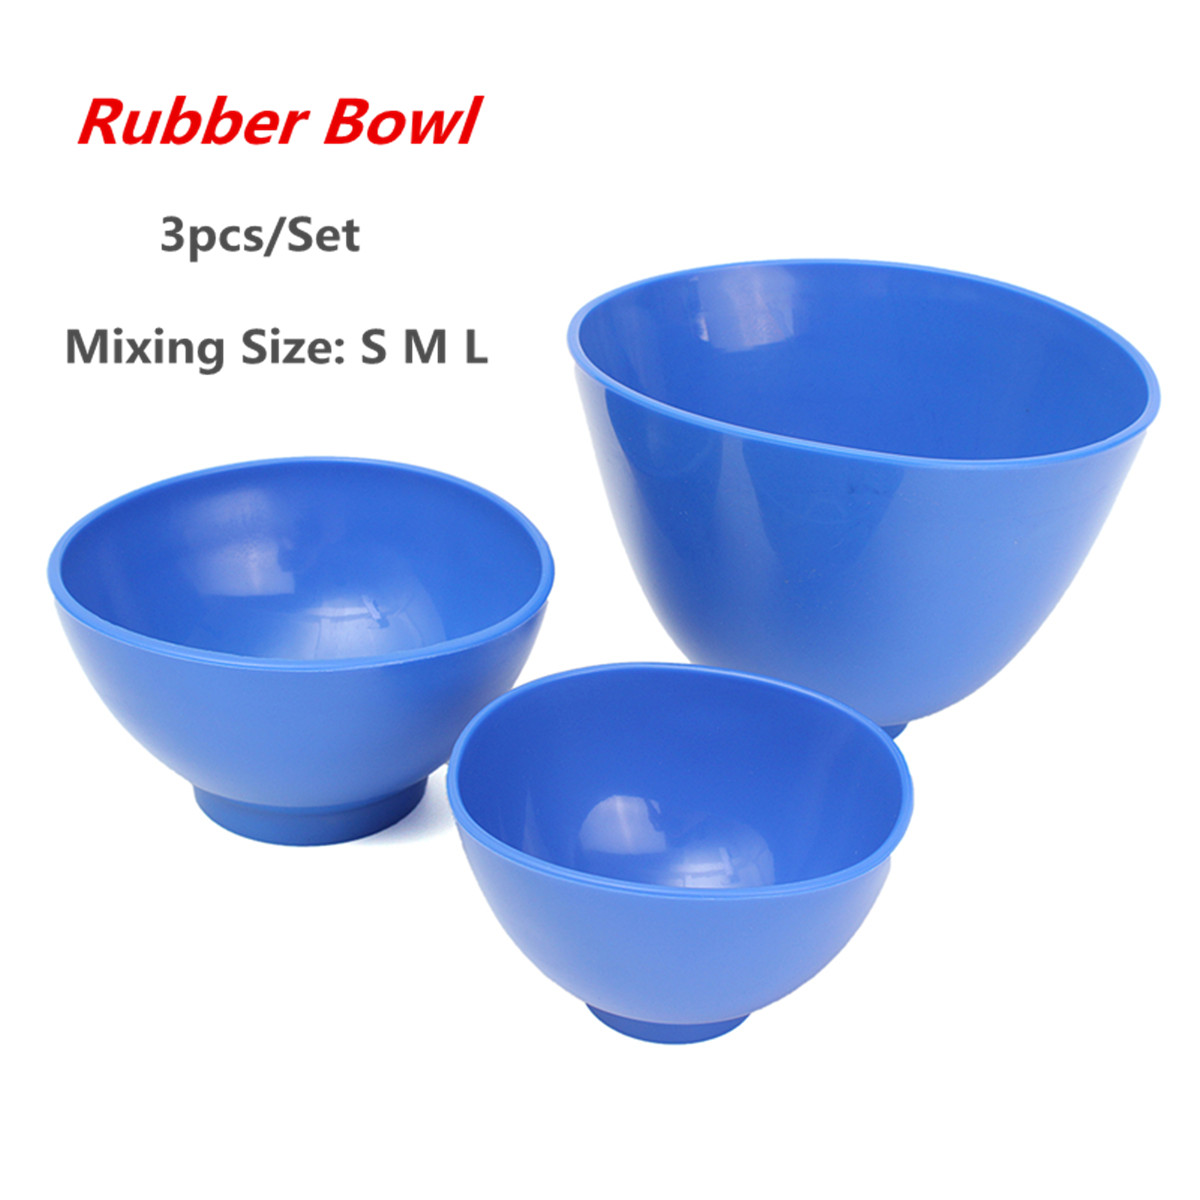 3 PCS Dental Rubber Mixing Bowl Plastic Flexible Medical Lab Silicon Bowl For Oral Hygiene Materials Teeth Whitening Tool plastic